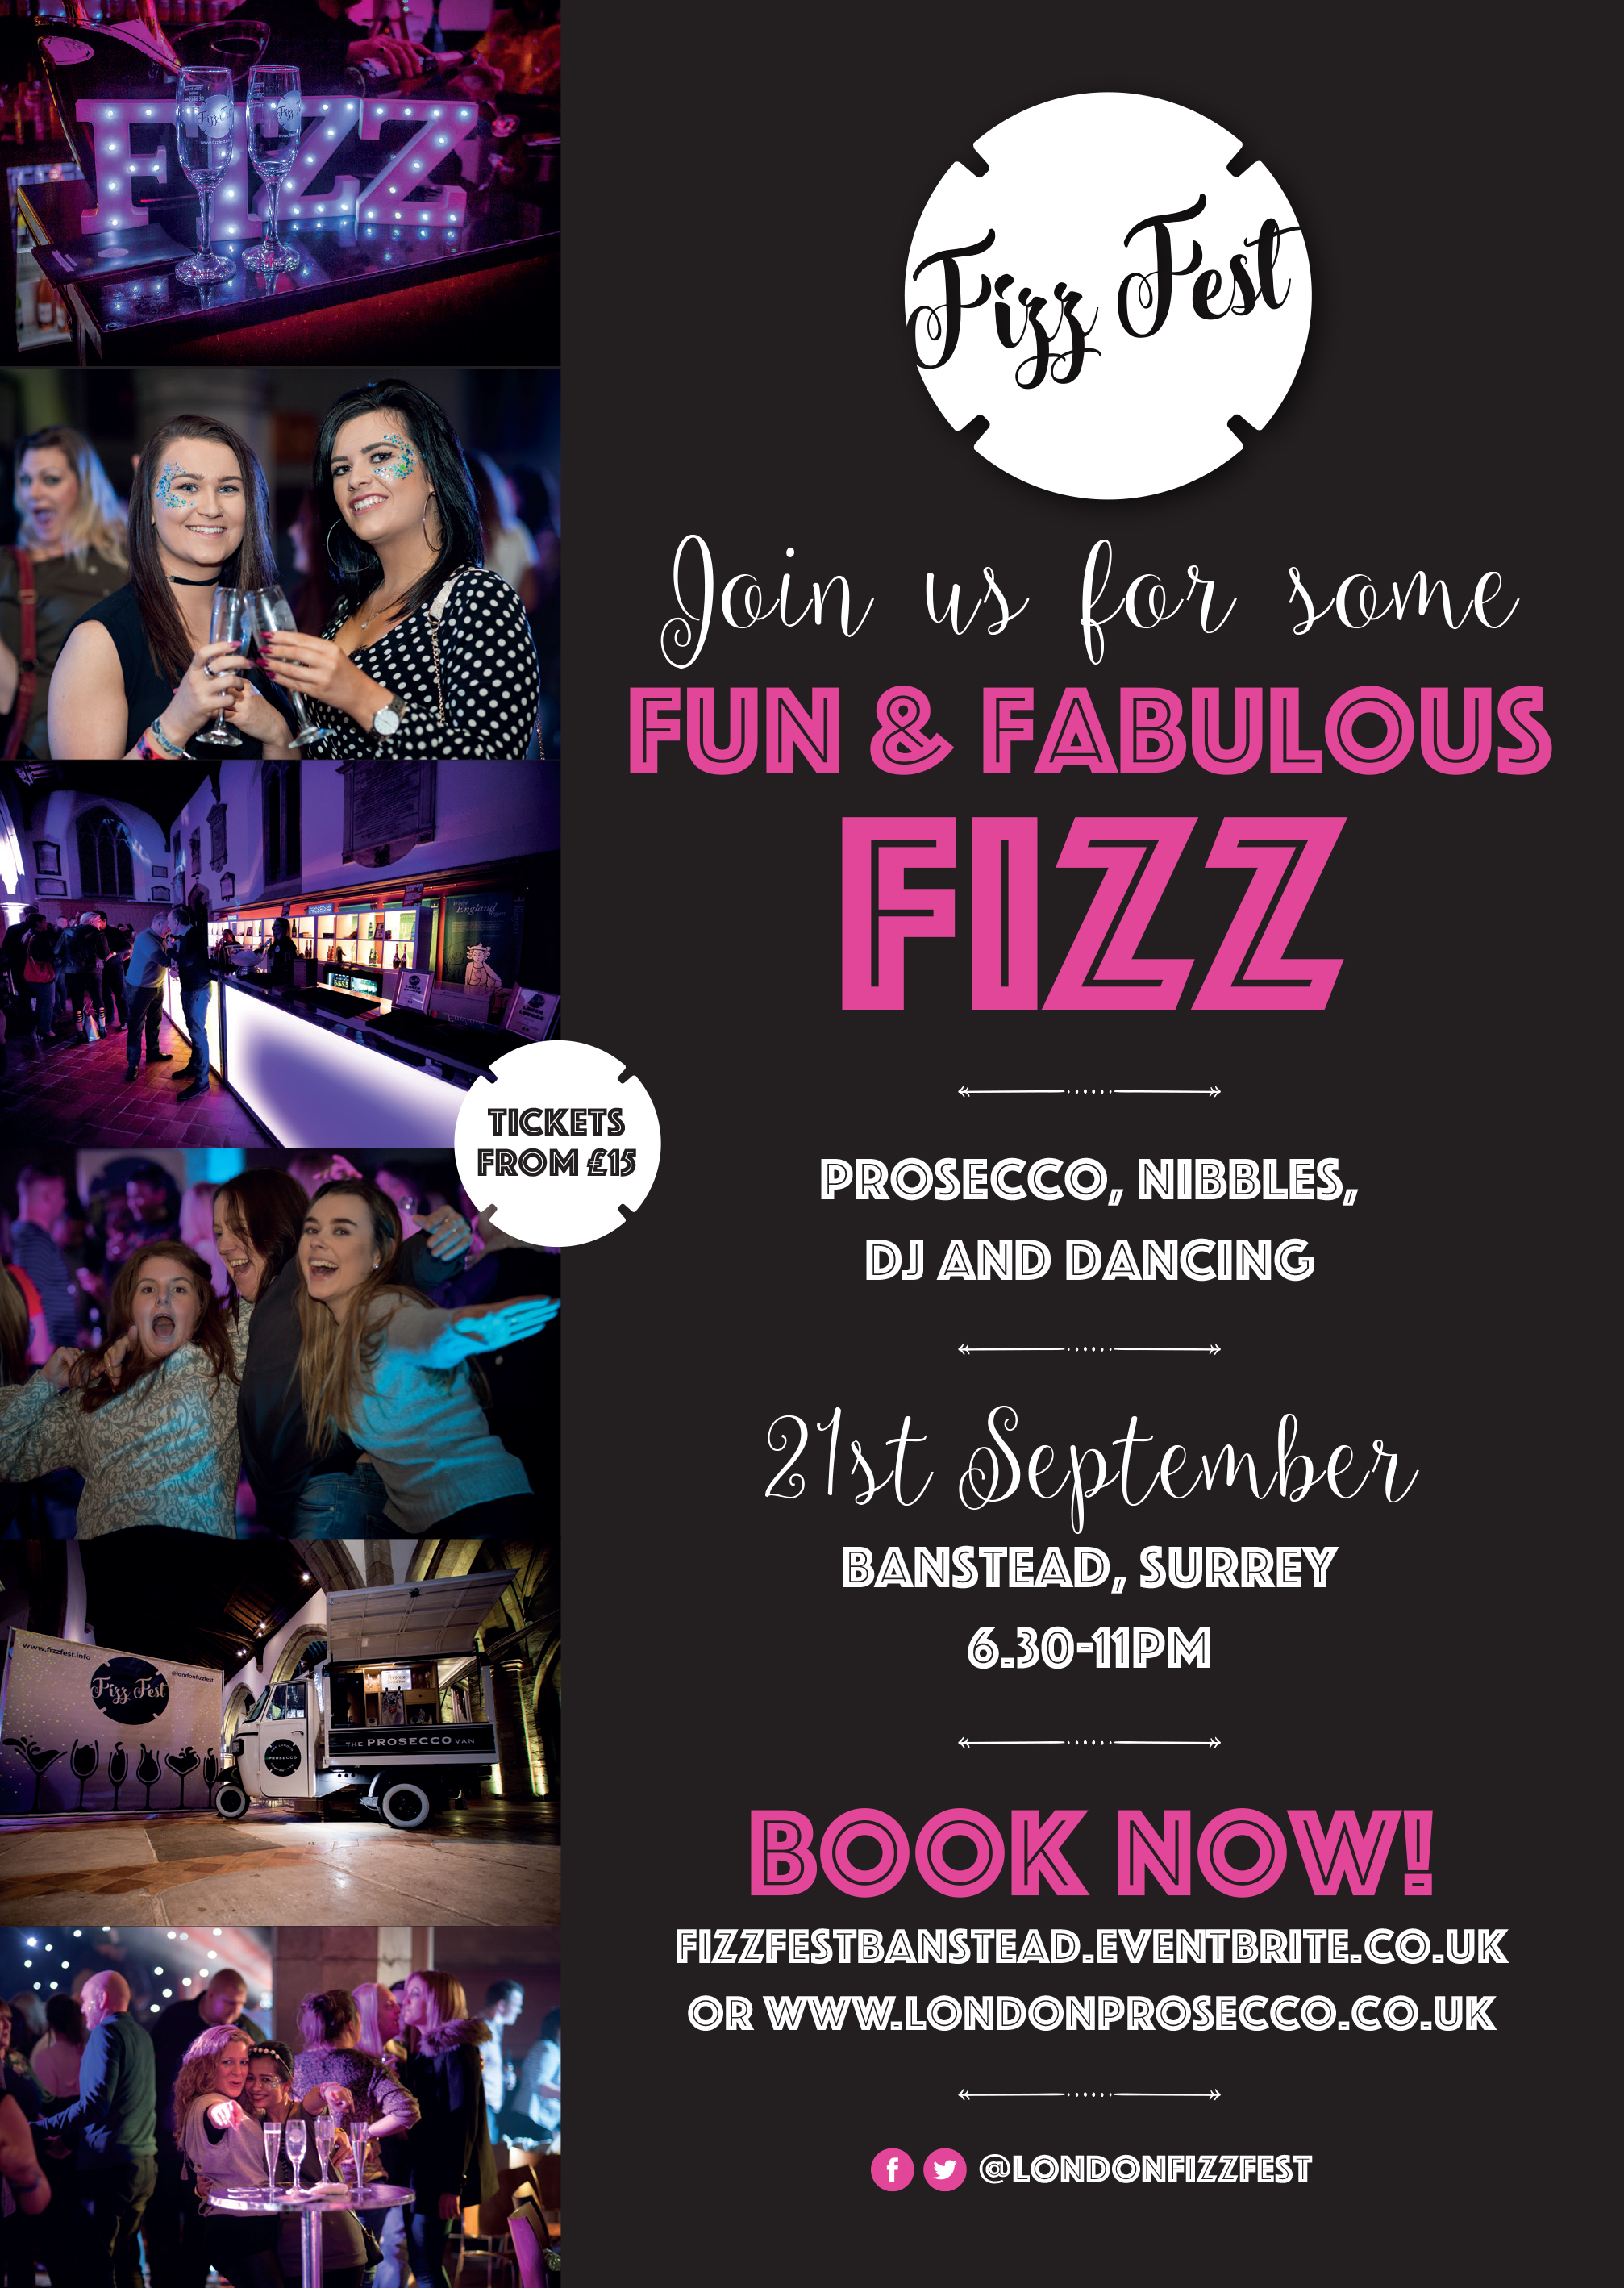 Fizz Fest Joint Full Page O&A Advert Photography Final BANSTEAD.jpg